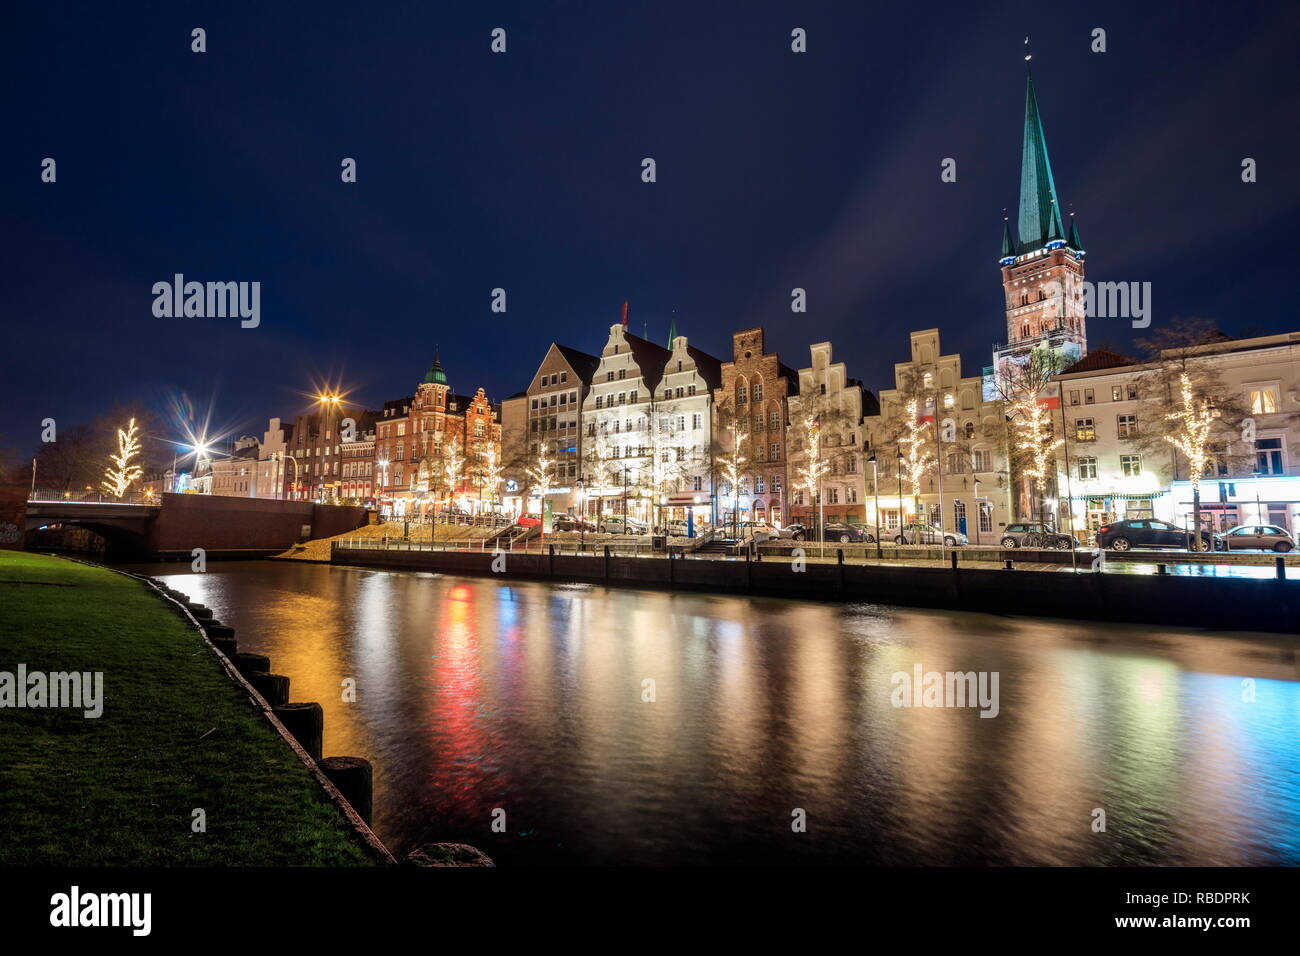 Night view of typical houses and the cathedral reflected in river Trave Lubeck, Schleswig Holstein Germany Europe - Stock Image